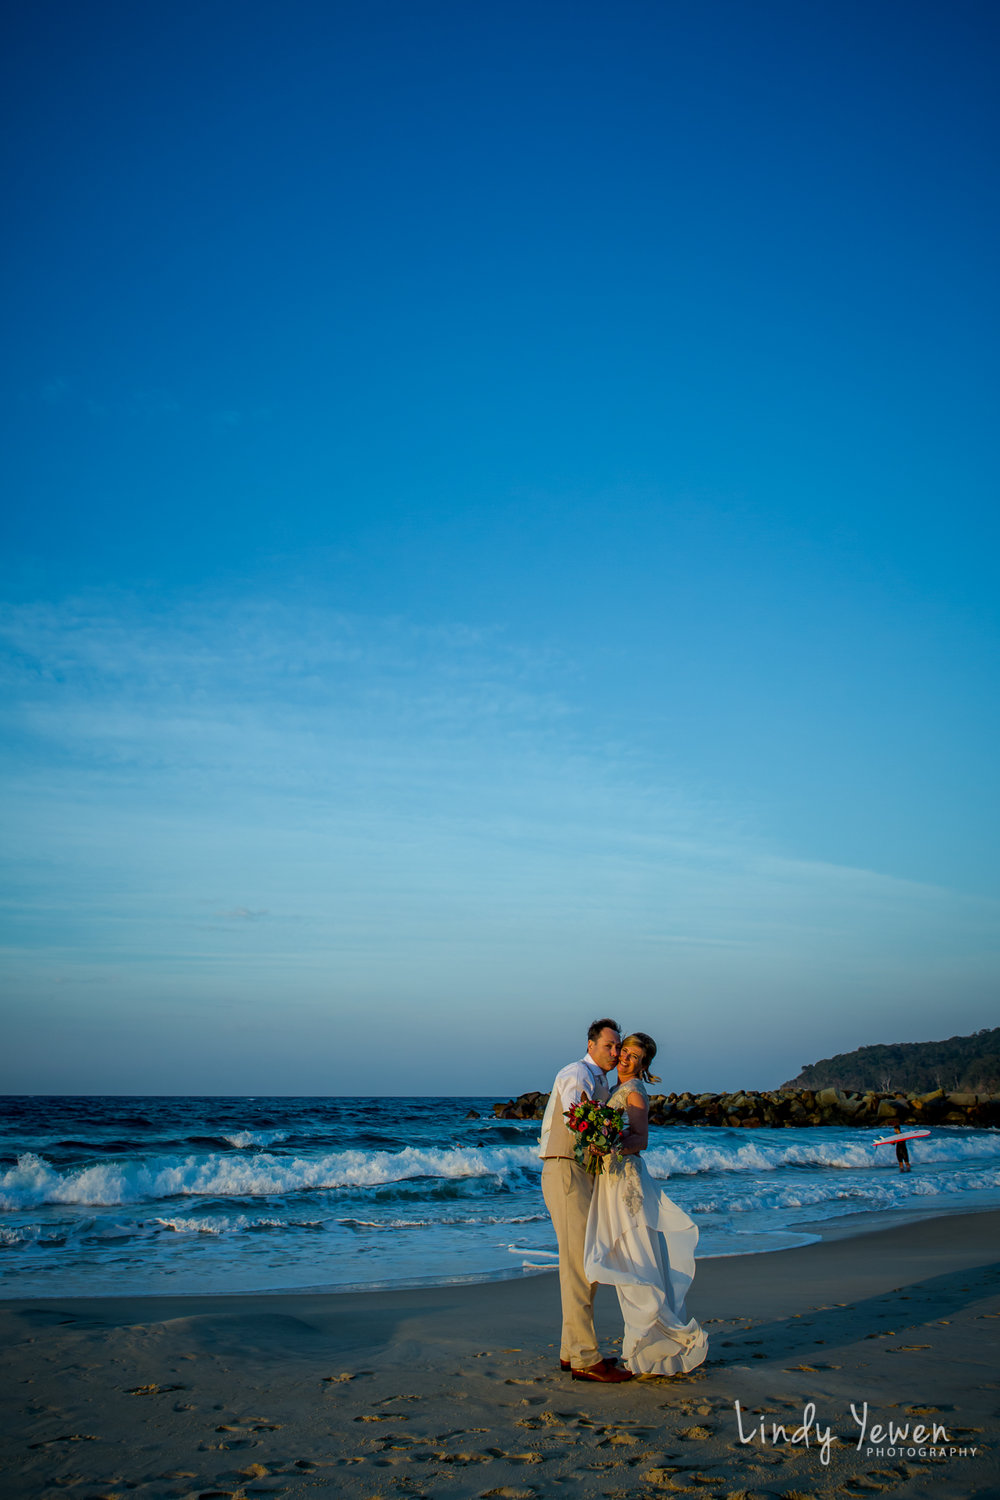 Noosa-Wedding-Photographer-Lindy-Yewen 38.jpg